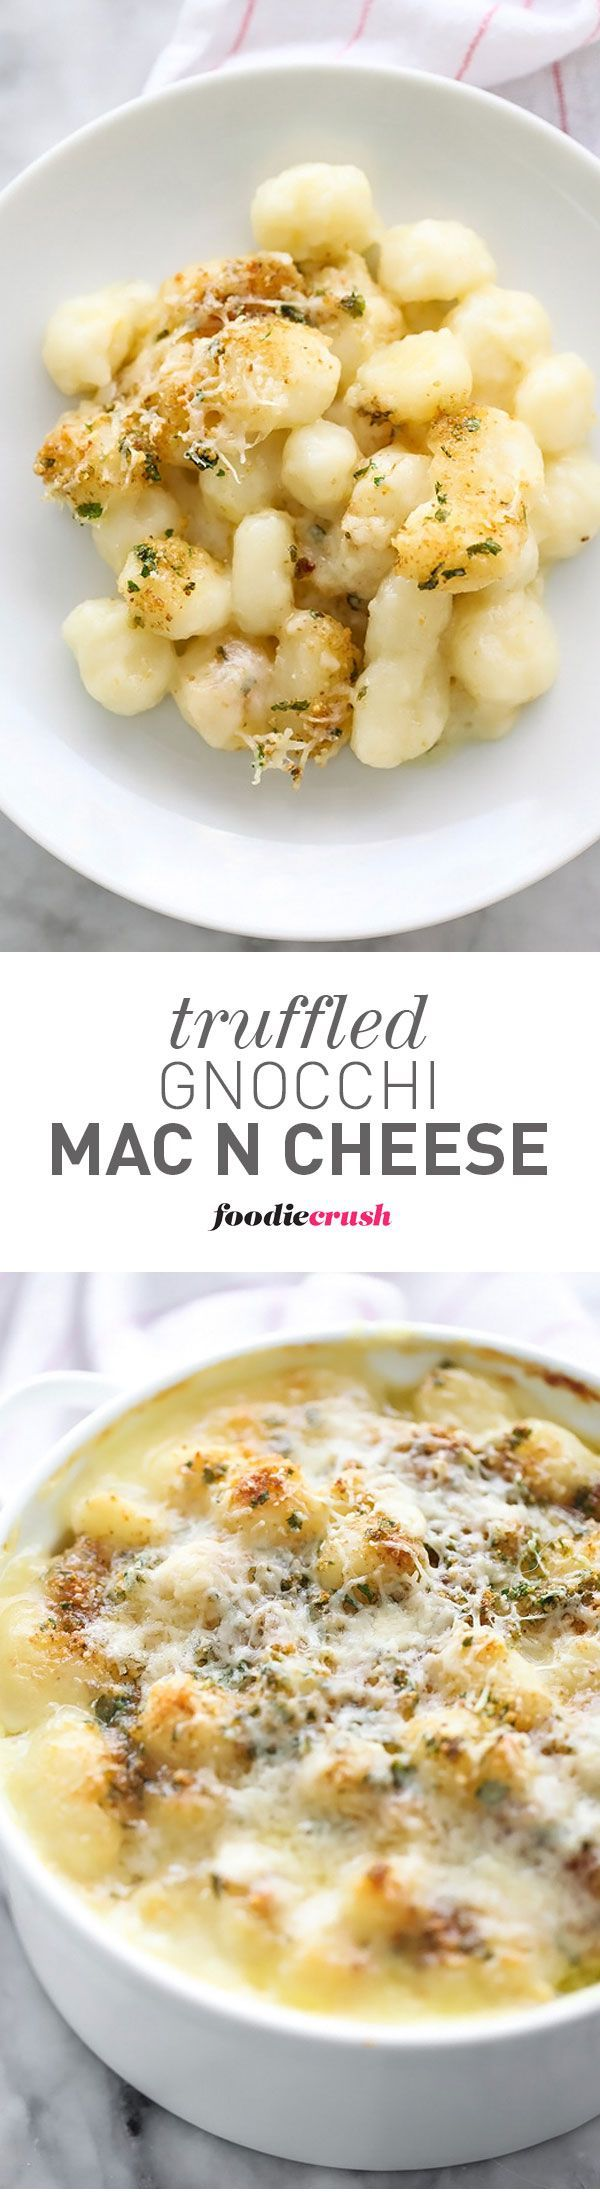 This easy dinner recipe can easily be made ahead and baked later and the crispy crunchy topper is the best part of it | foodiecrush.com